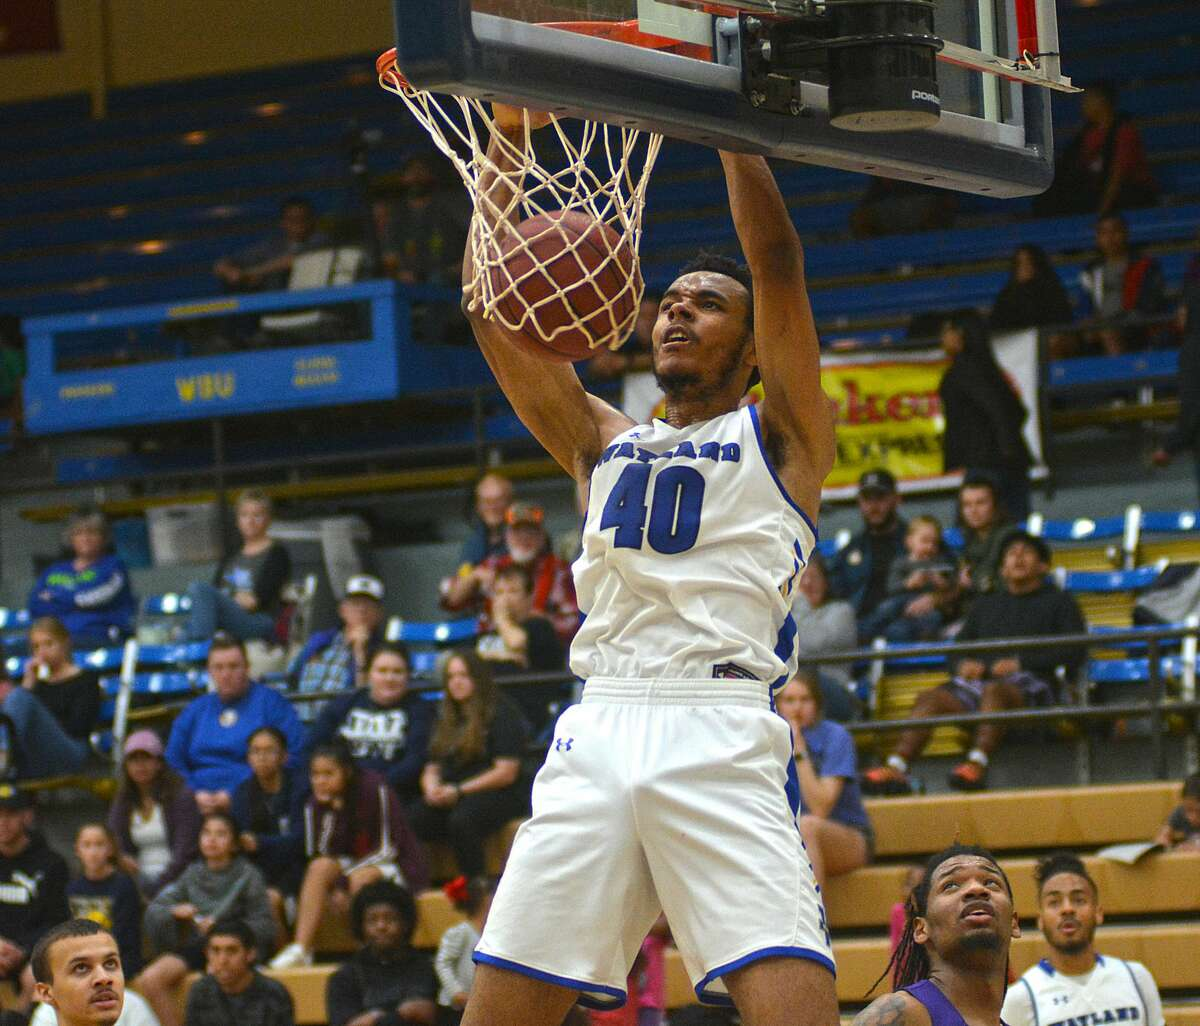 Wayland Baptist's Jibrael Washington slams in a dunk during a Sooner Athletic Conference men's basketball game against Southwestern Assemblies of God on Saturday, Feb. 1, 2020 in the Hutcherson Center.